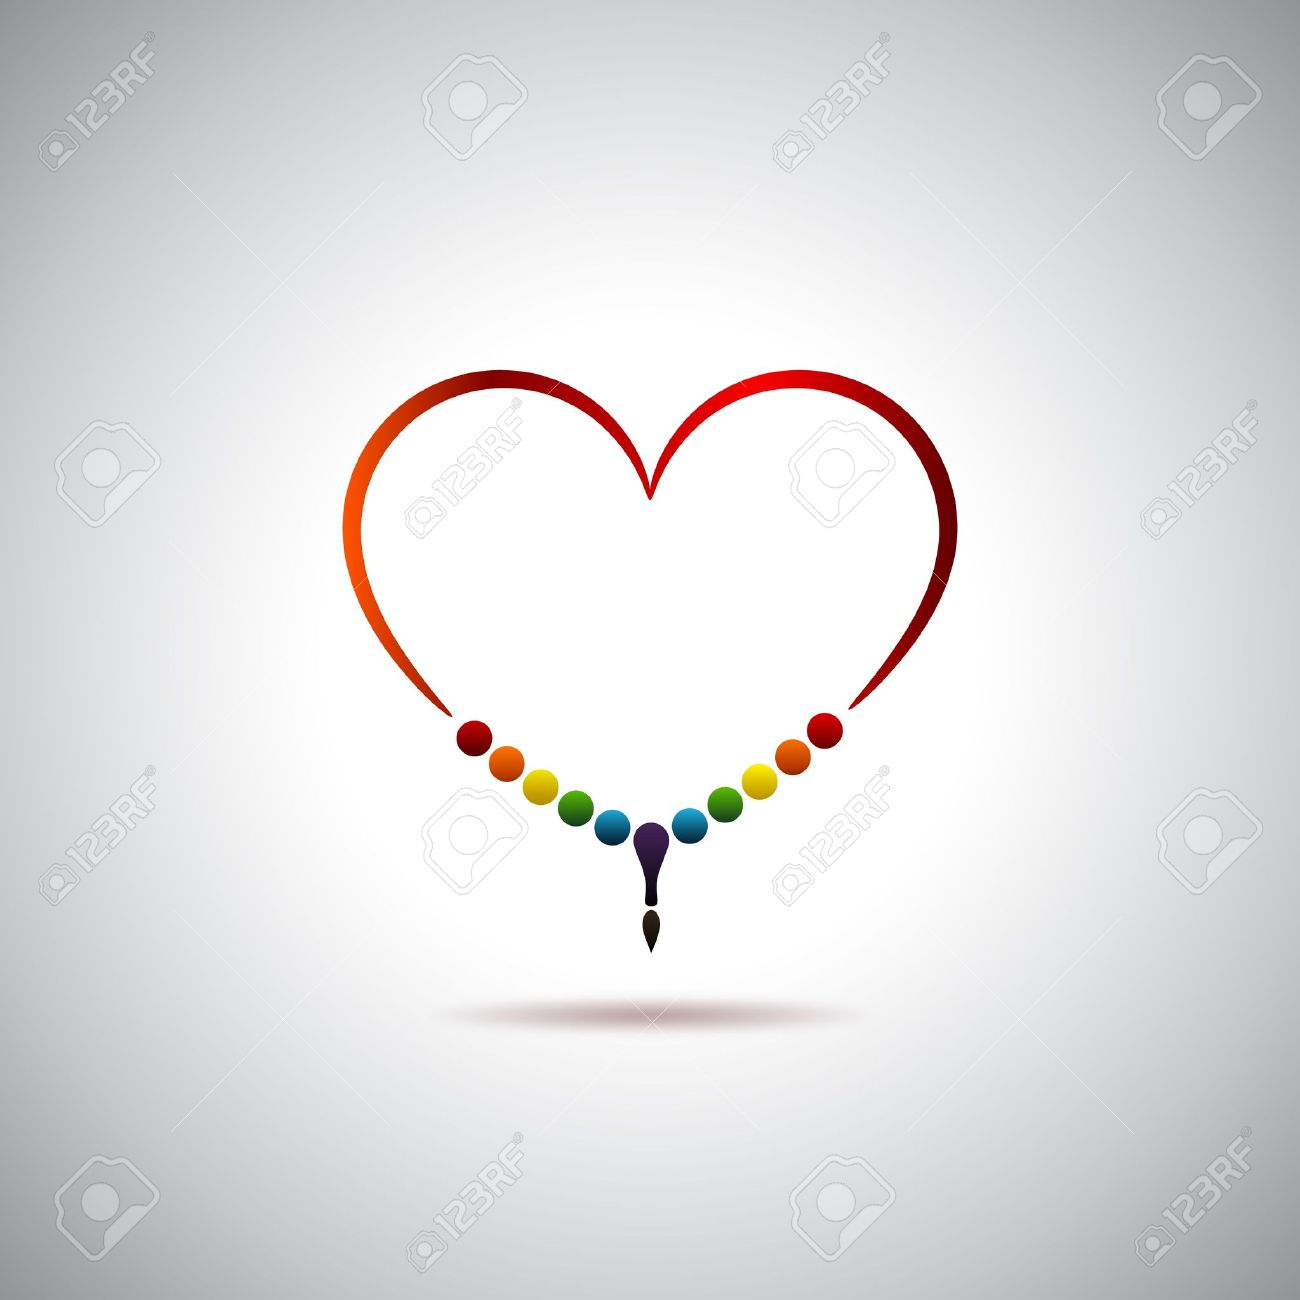 Heart and dhikr Stock Vector - 16723838